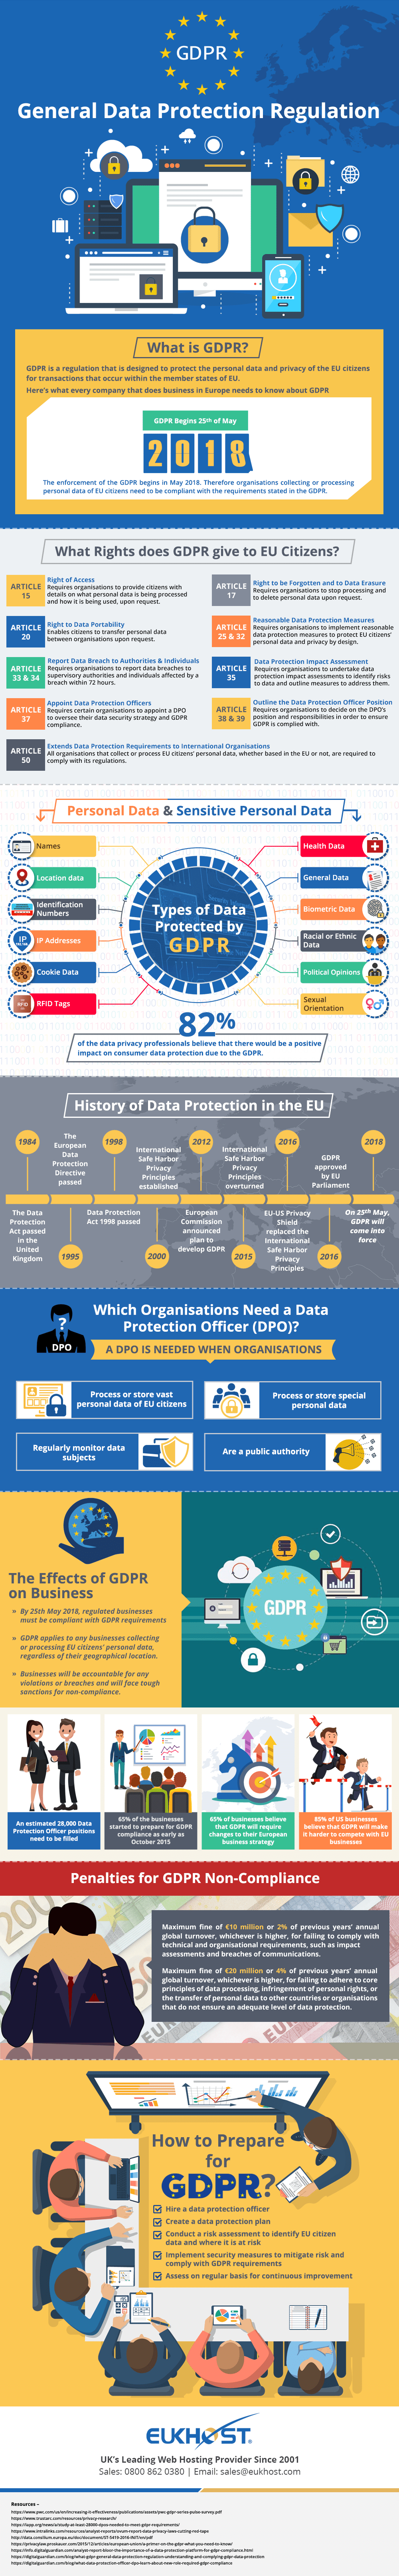 GDPR infographic by EUKHost